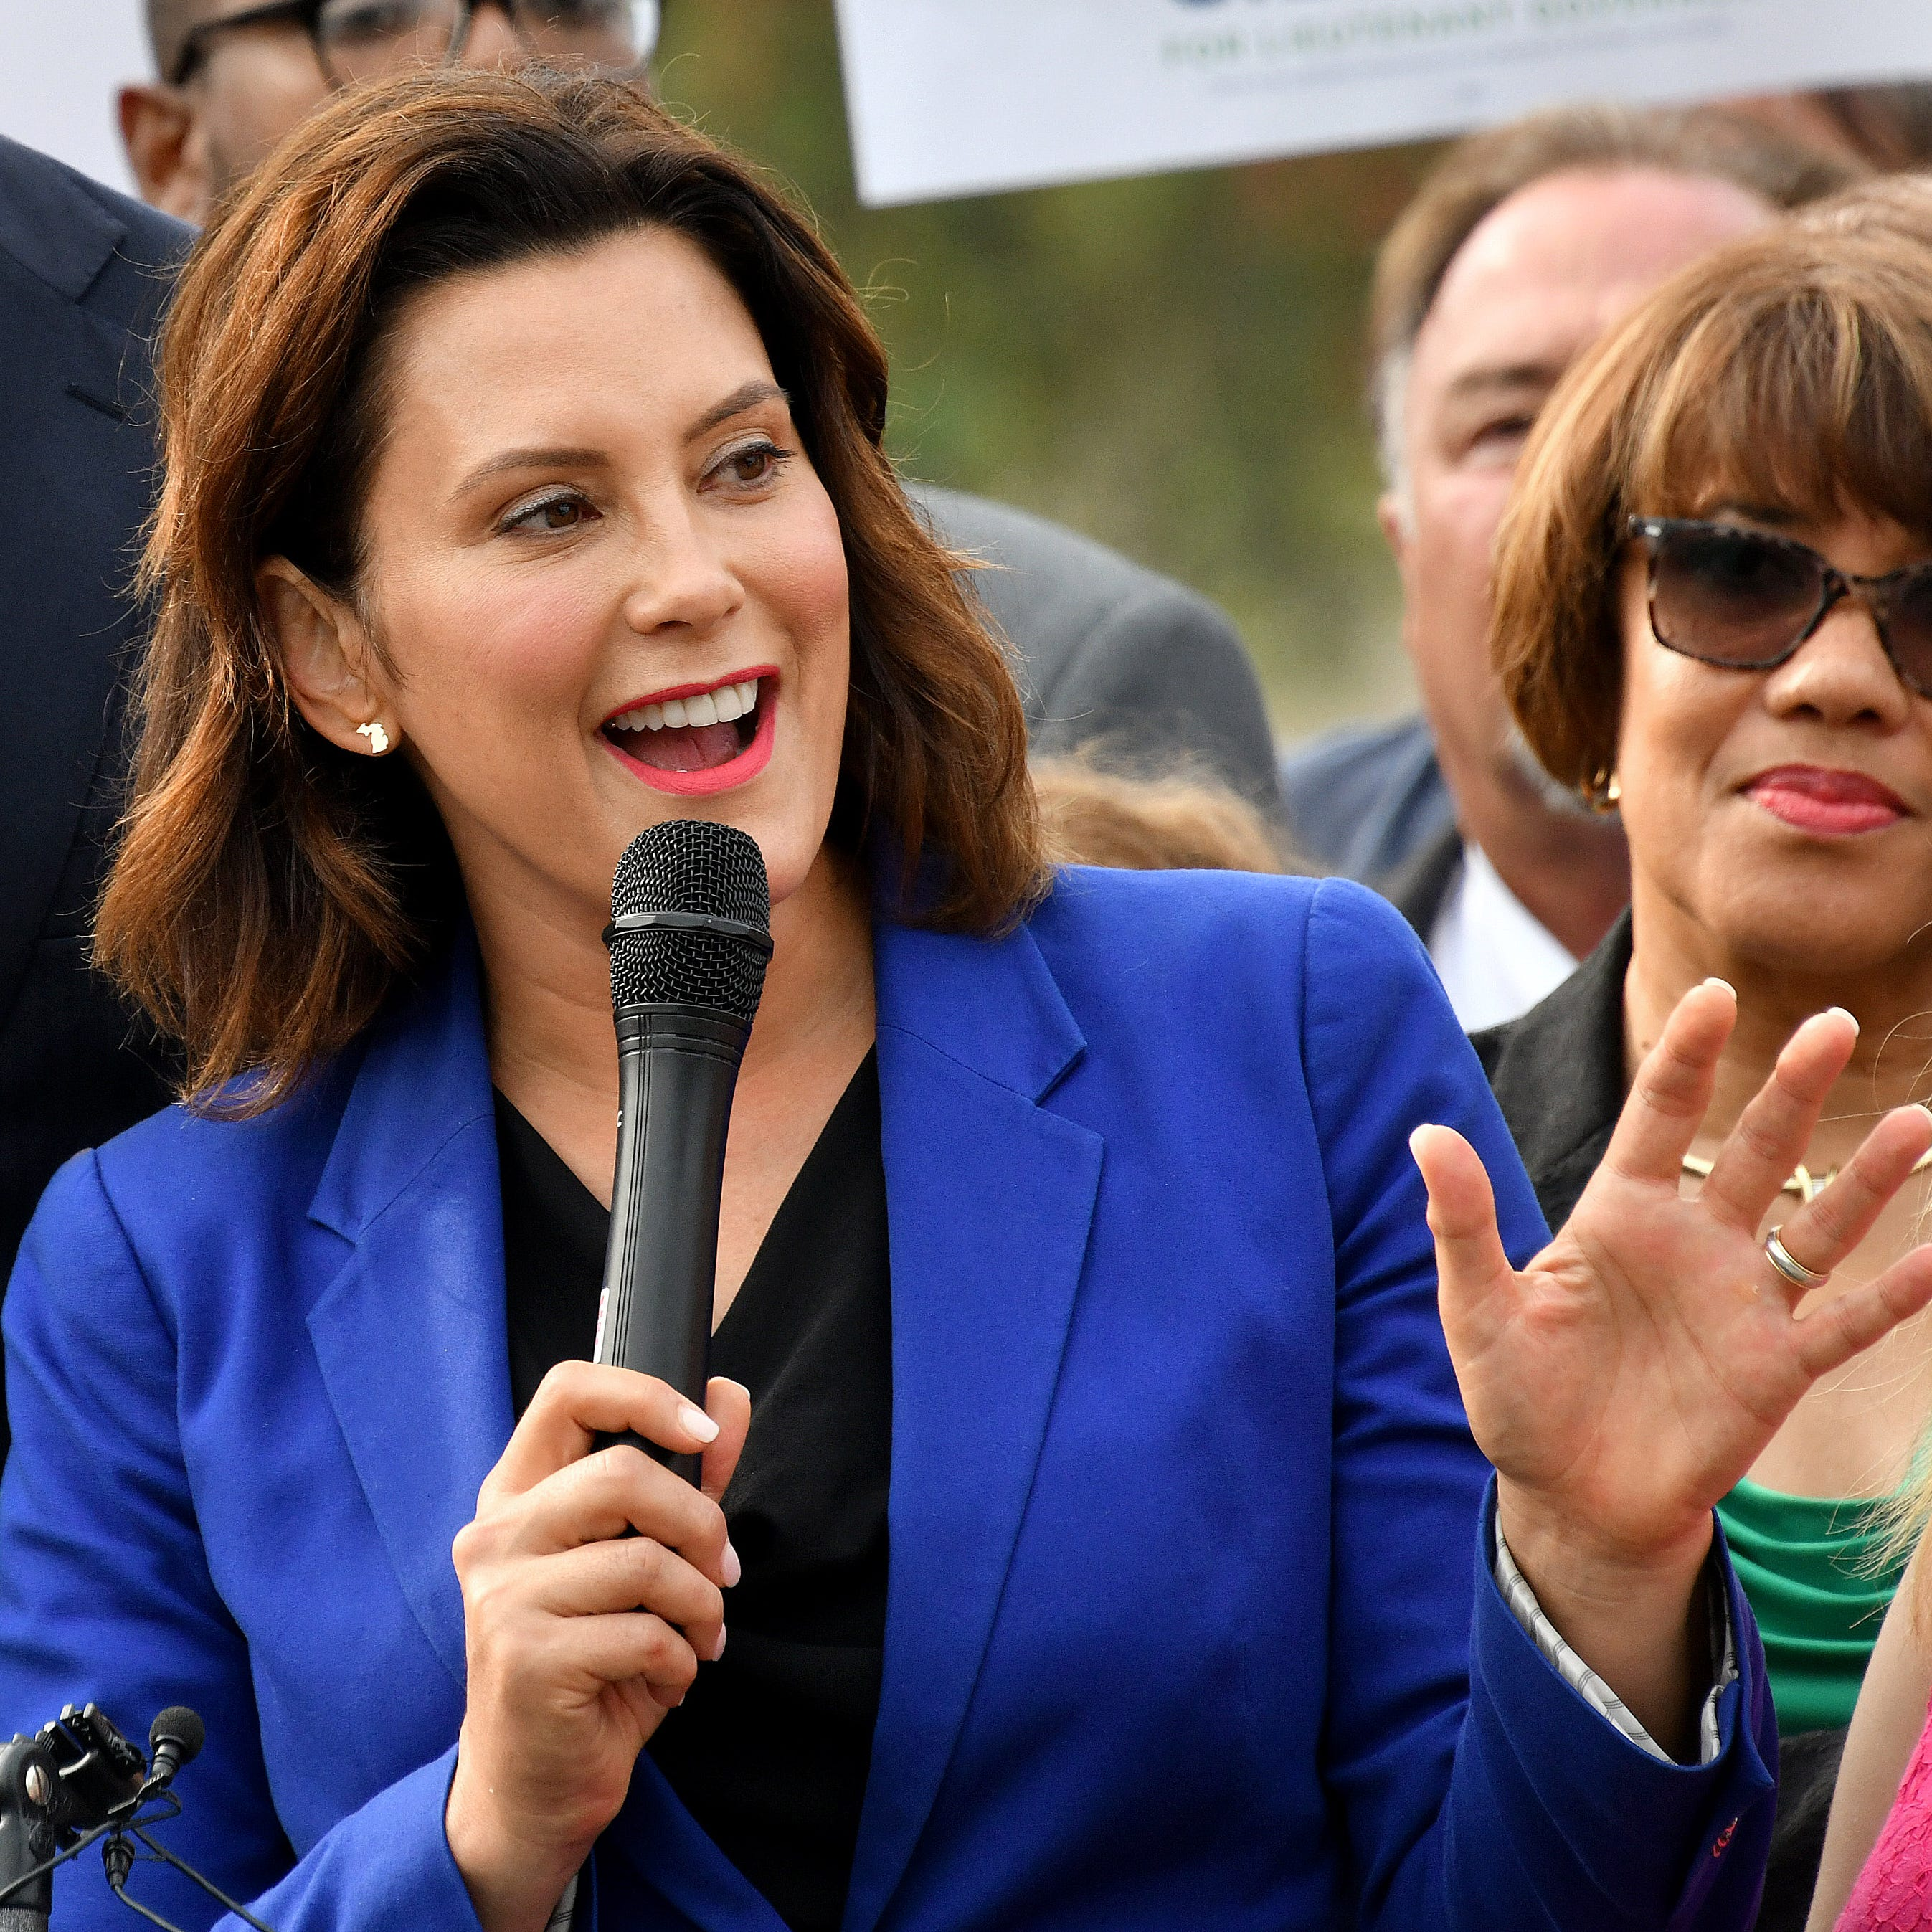 Opinion: Why Whitmer should be our next leader